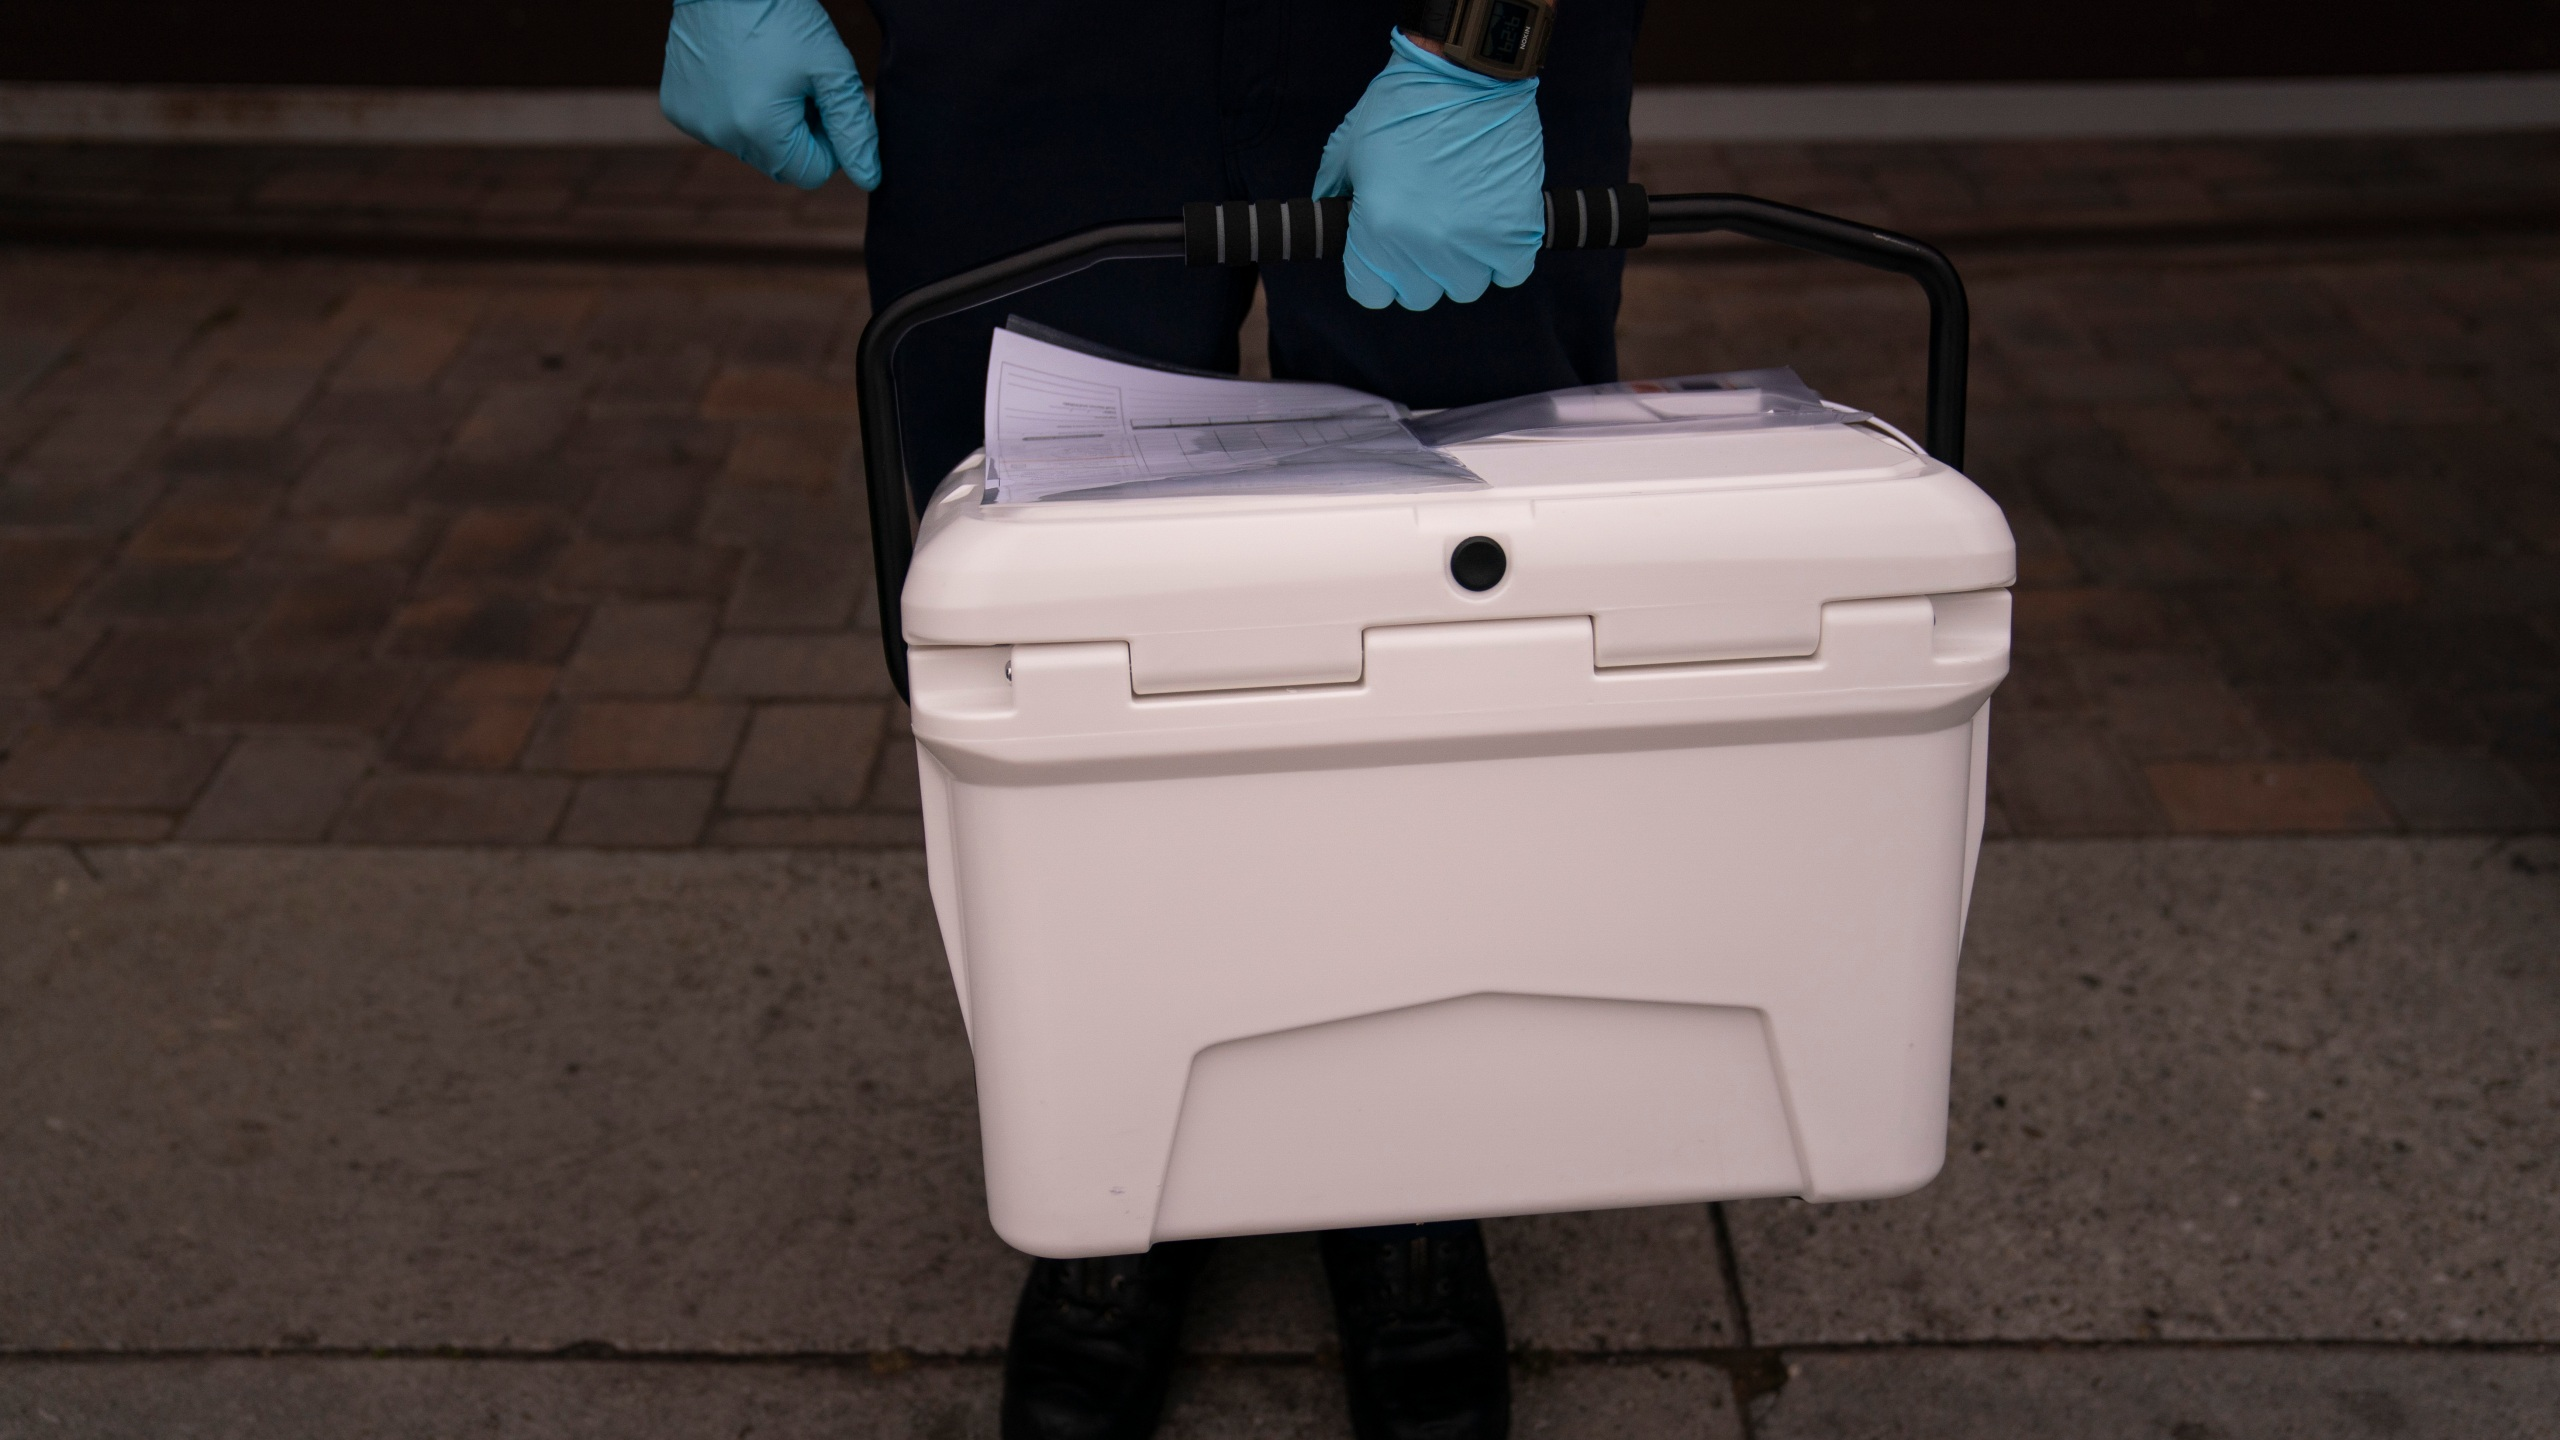 Volunteer carrying a cooler containing the Pfizer COVID-19 vaccine. (AP Photo/Jae C. Hong)